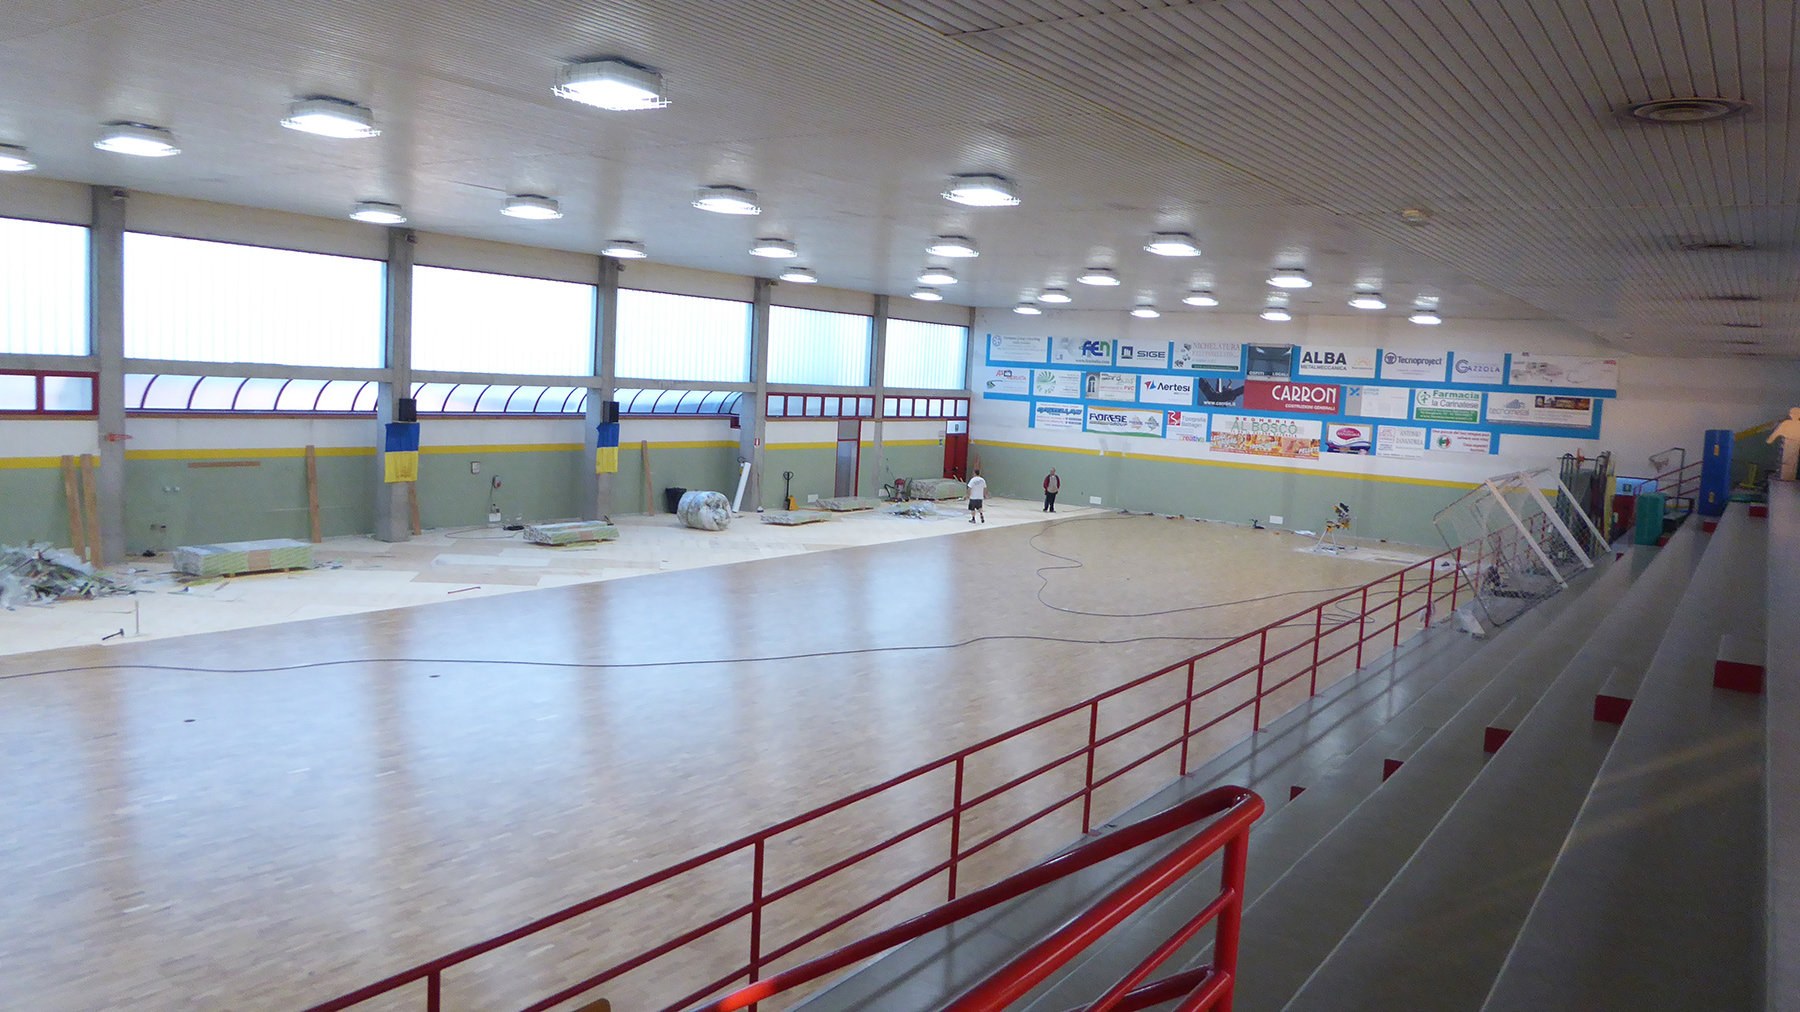 More than half installed flooring, the gym changes face